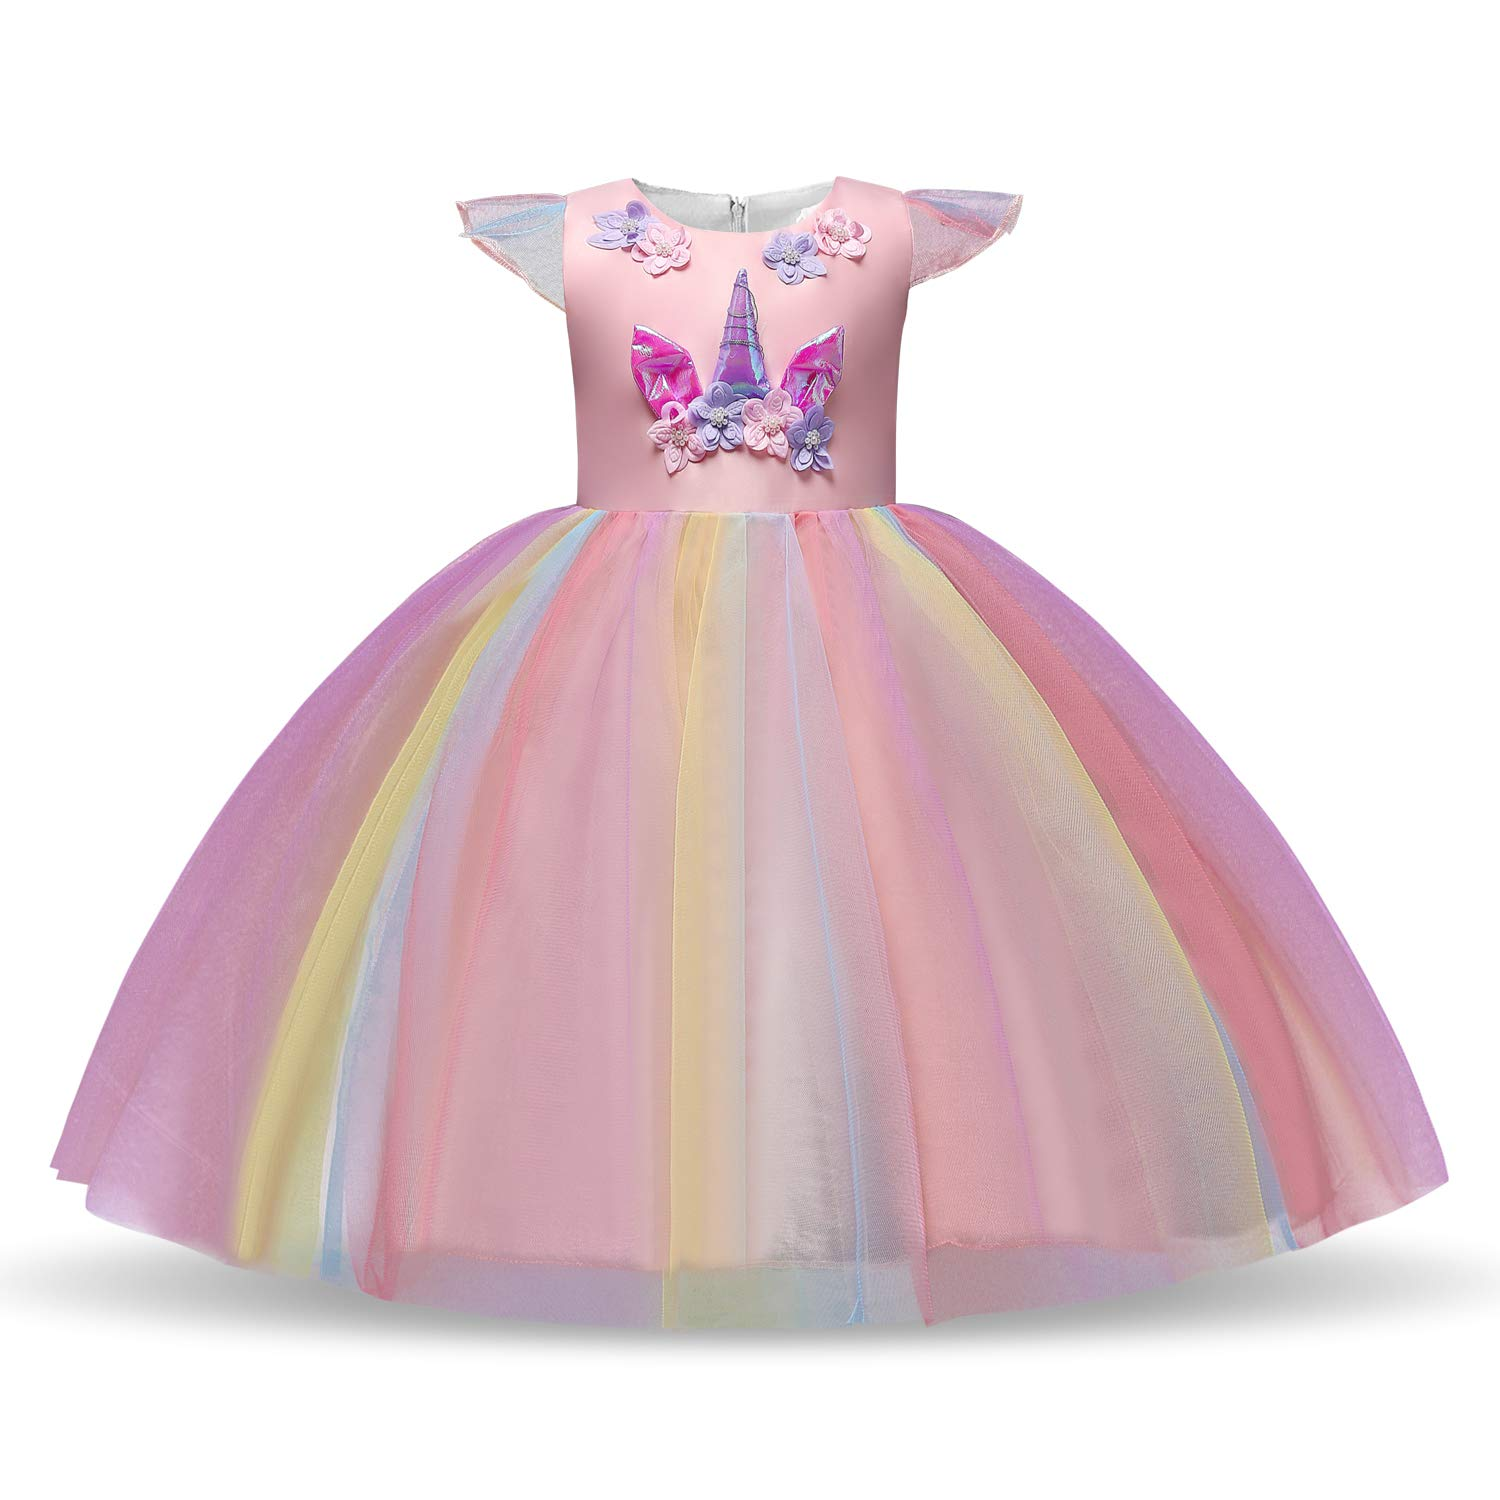 Girls-Unicorn-Dress-Princess-Dressing-Up-Costume-Outfit-Pink-Age-3-10-Years